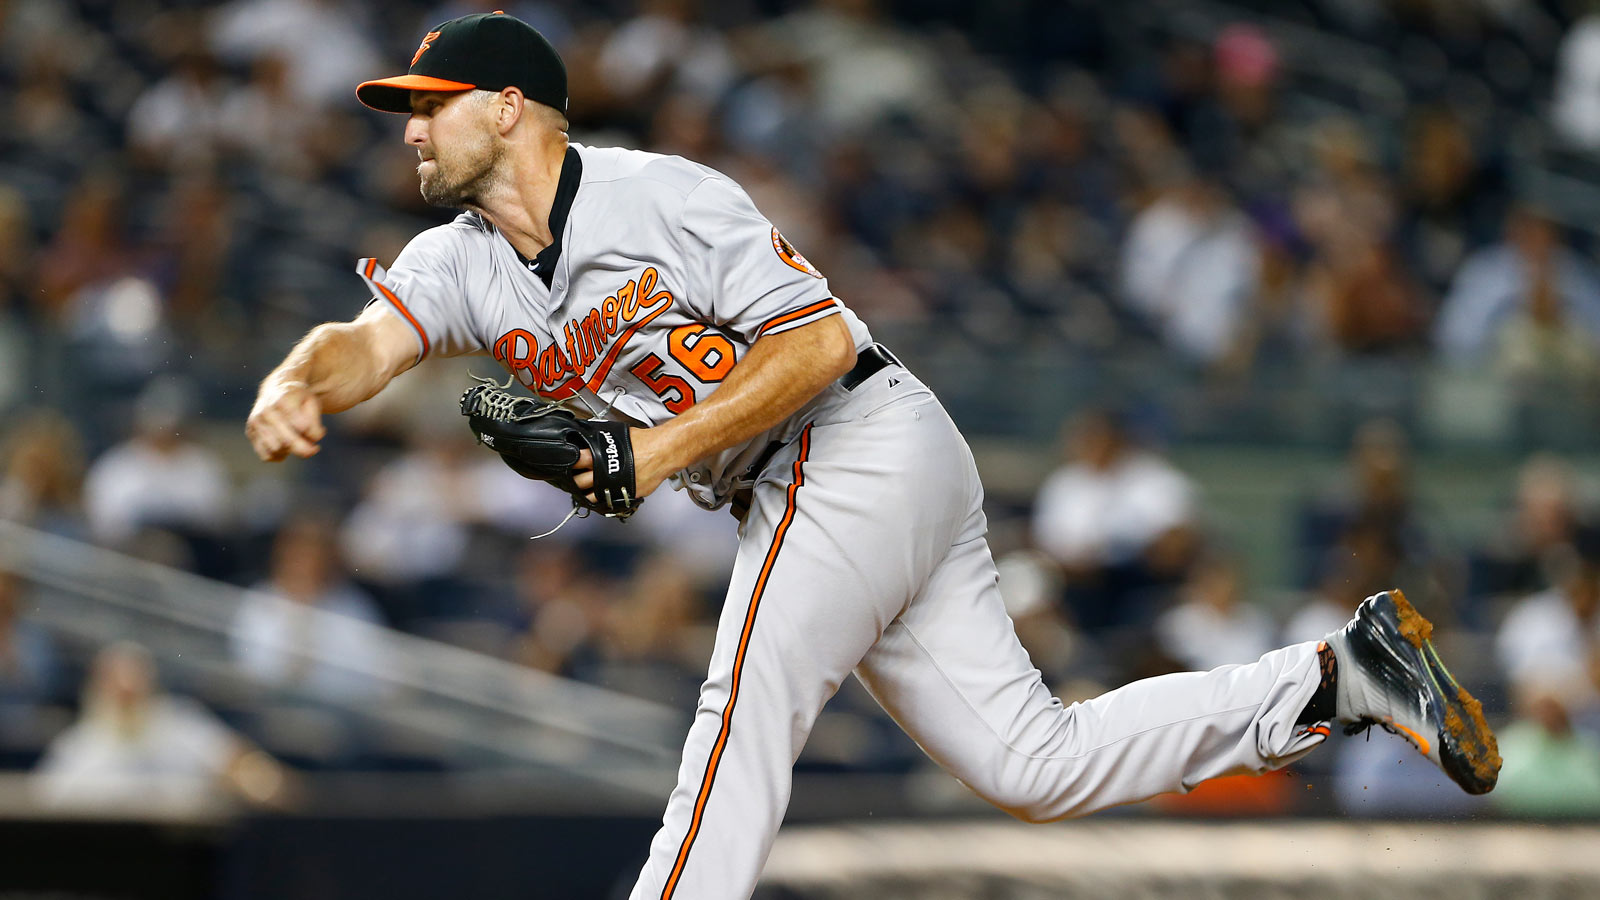 Report: Dodgers 'showing significant interest' in reliever Darren O'Day